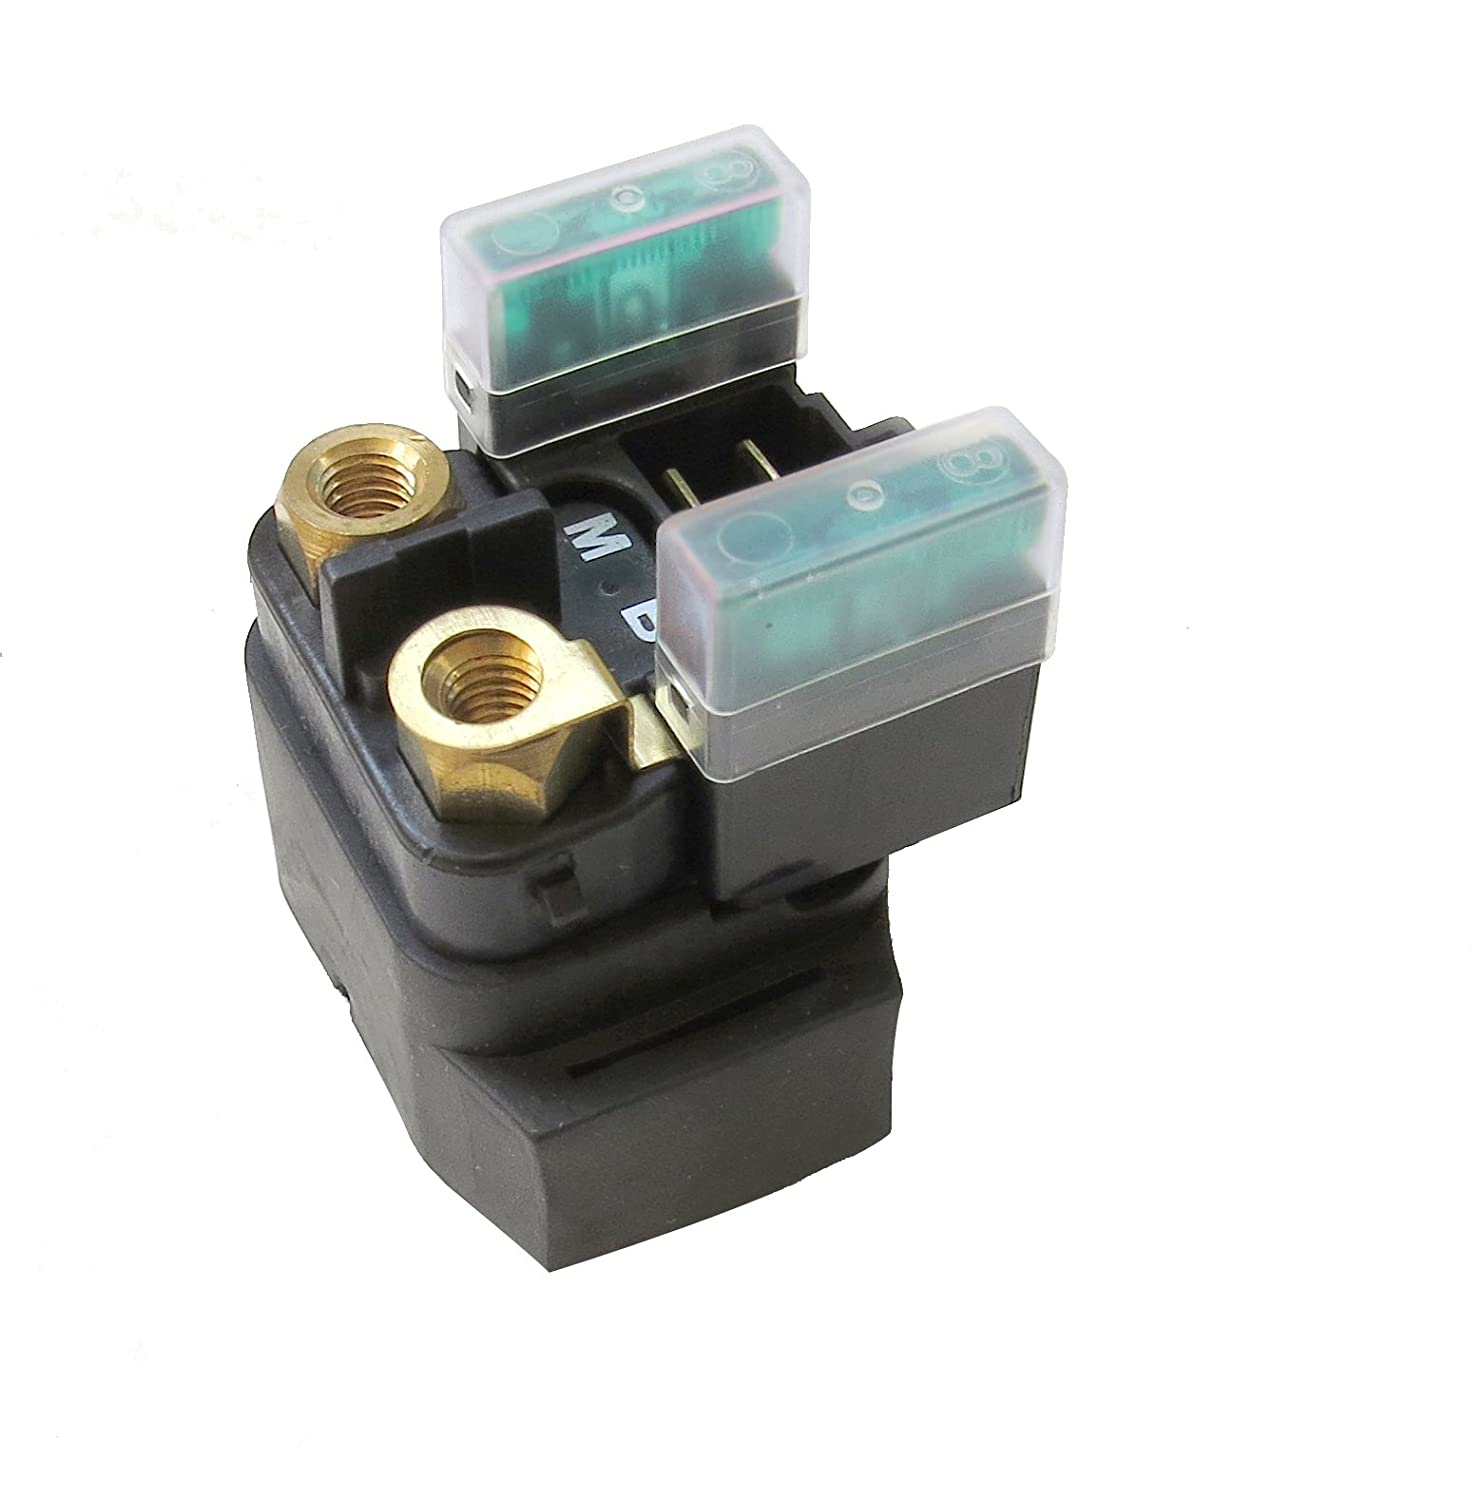 Aitook Ait S0623 Starter Solenoid Relay Yamaha Xv1900 2008 Stratoliner Ignition Wiring Roadliner Automotive